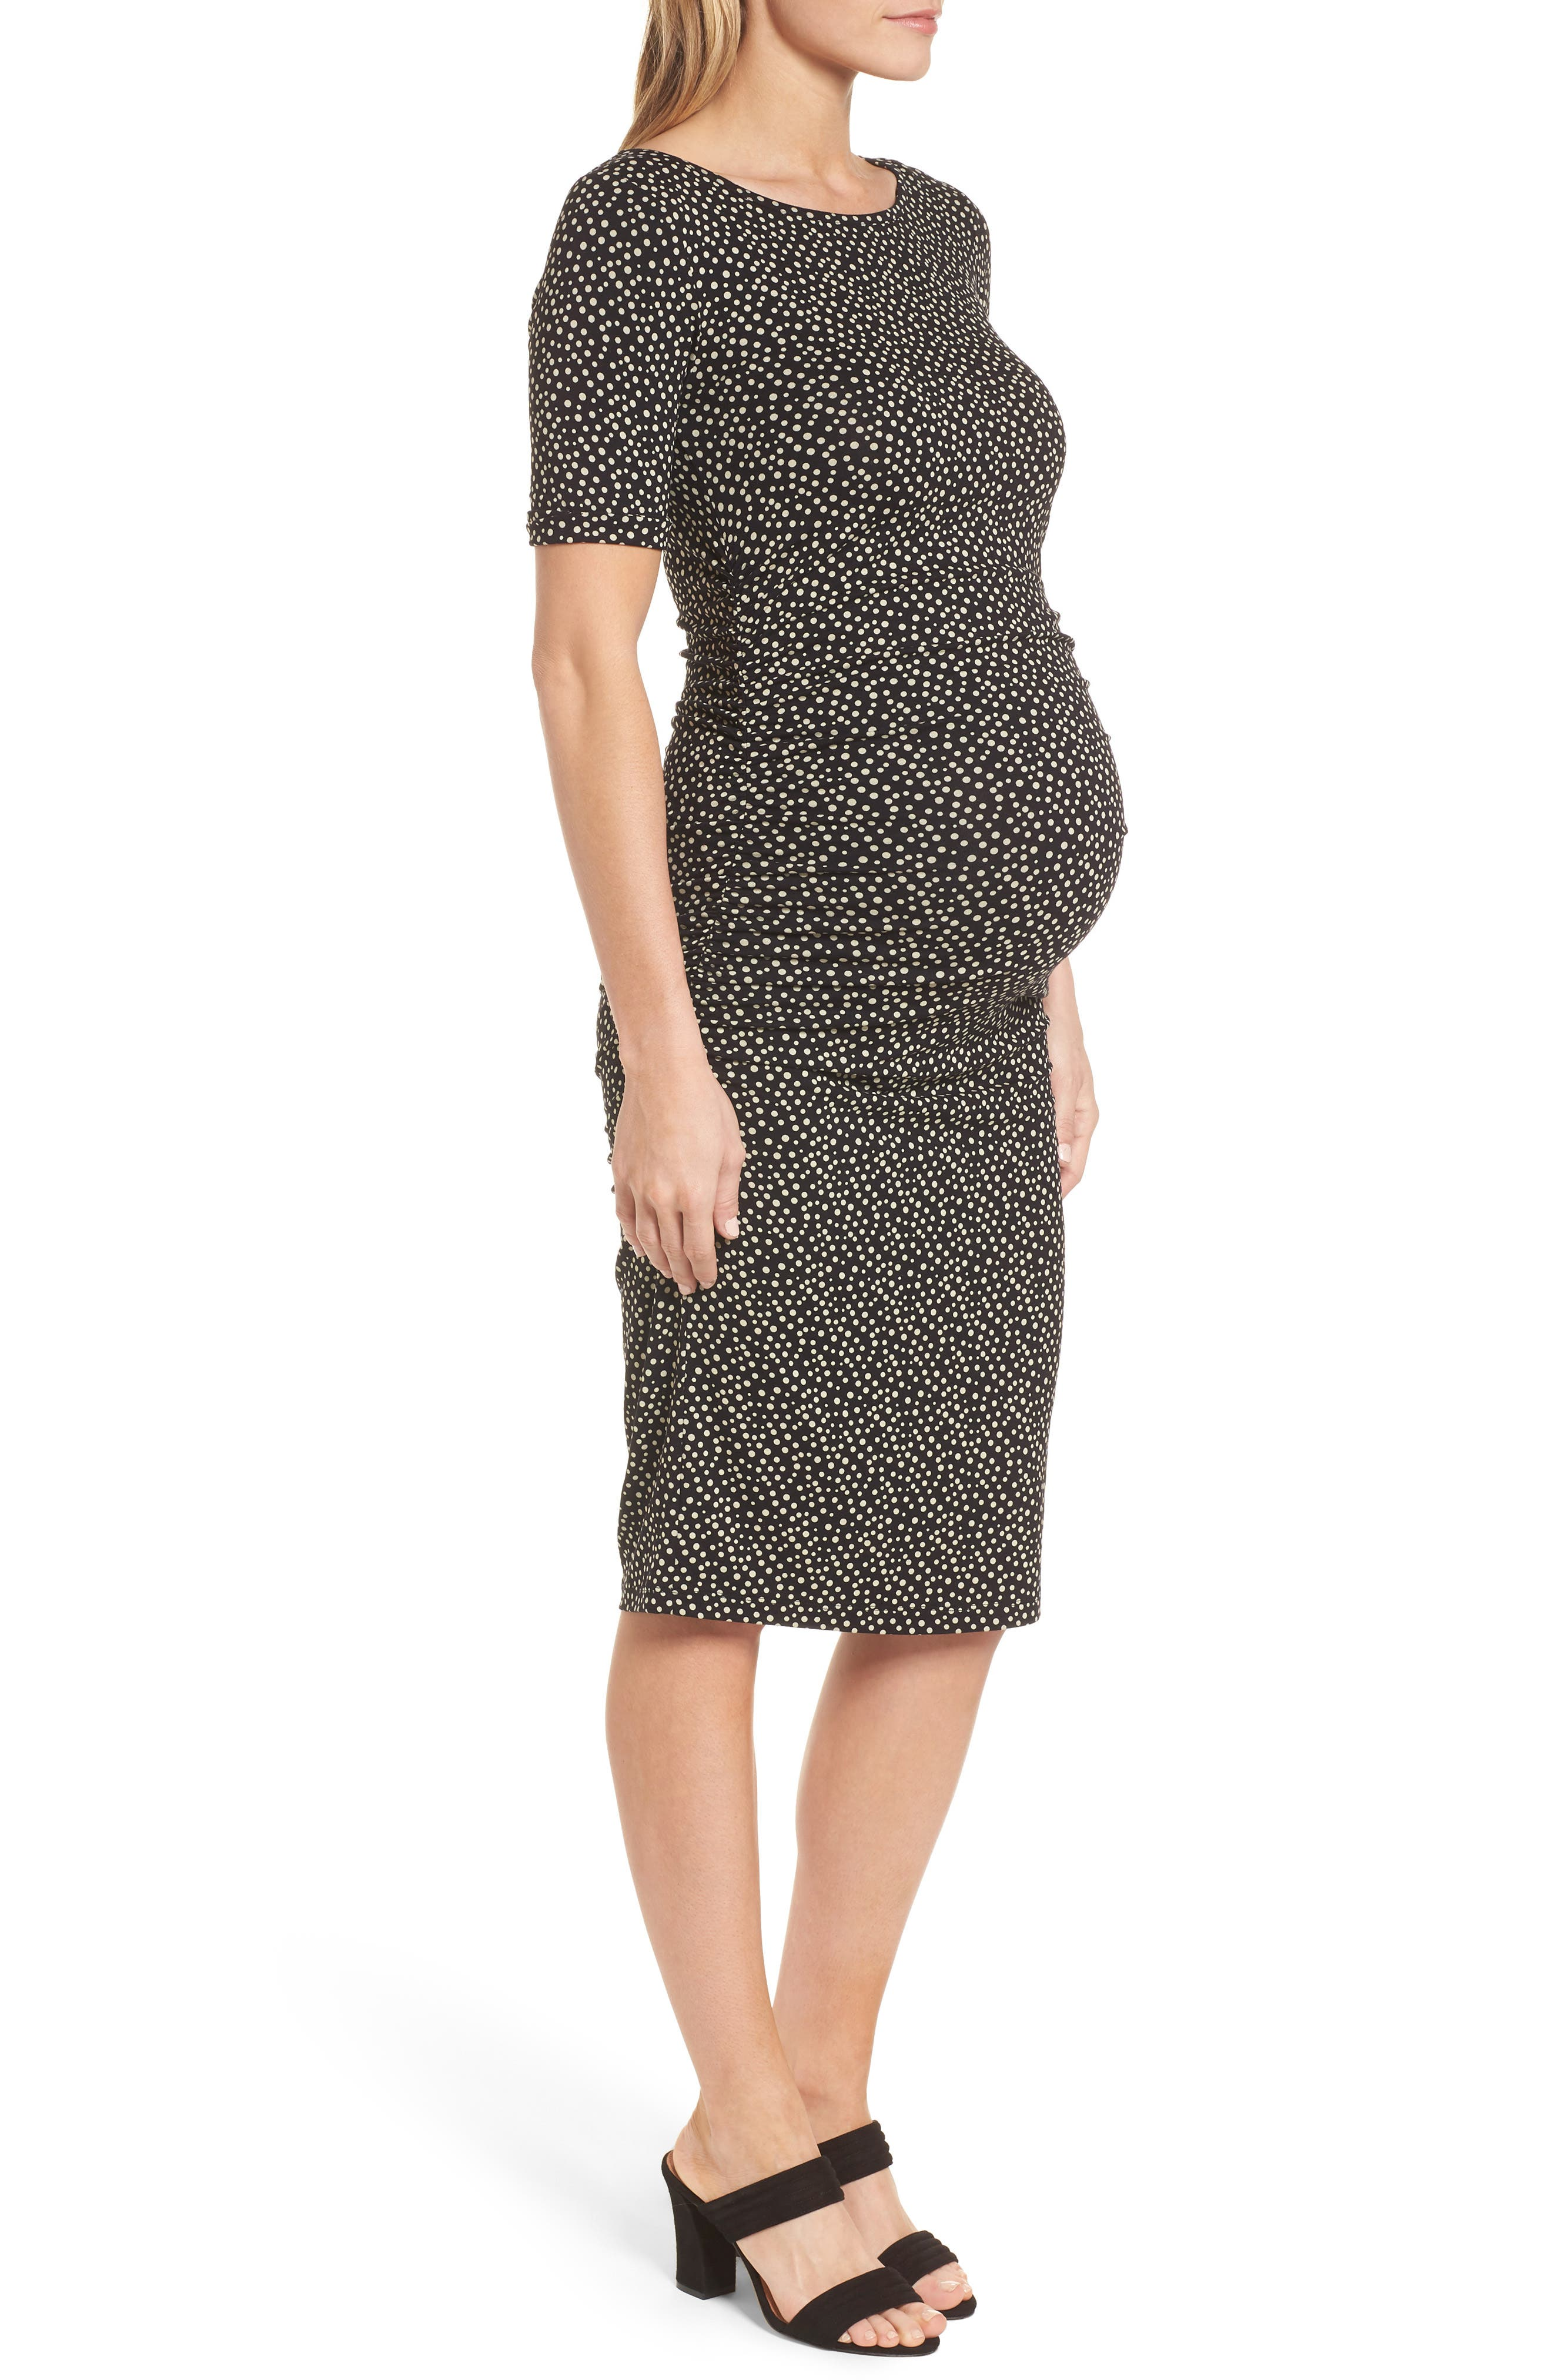 Danni Ruched Maternity Dress,                             Alternate thumbnail 3, color,                             POLKA PRINT